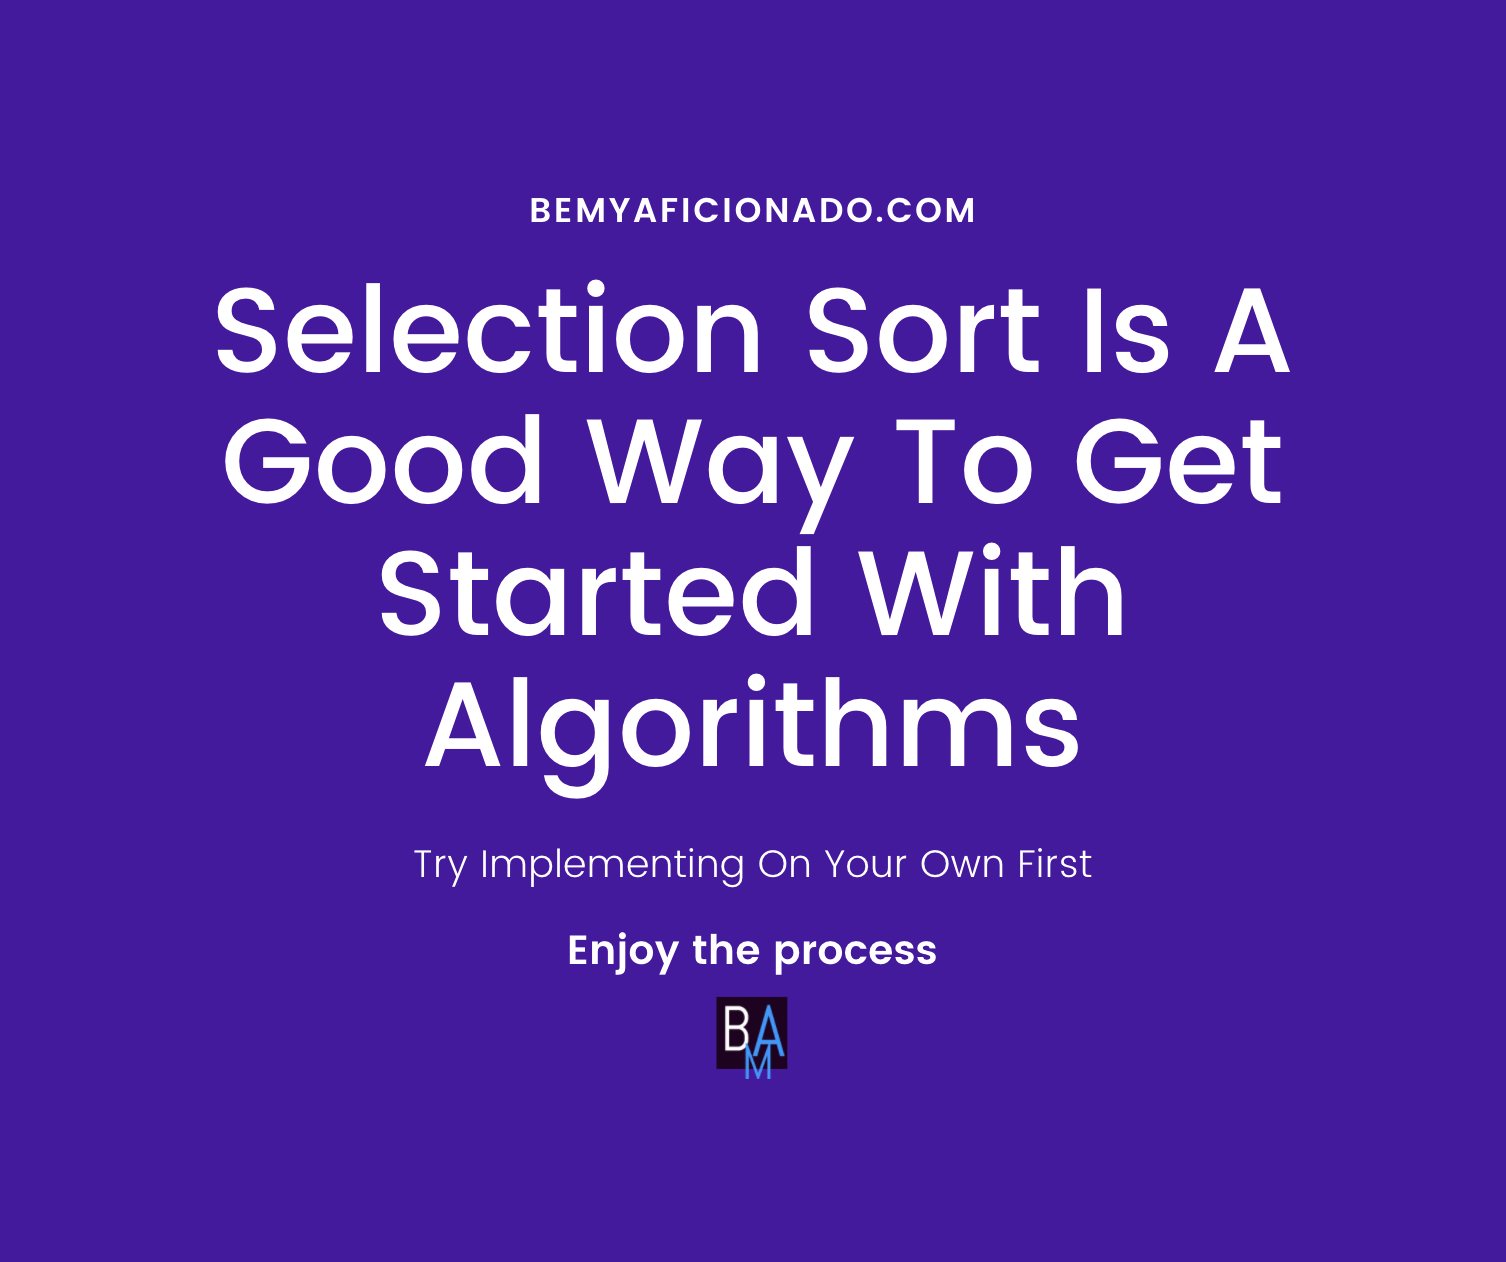 Selection Sort is a good way to start with the algorithms